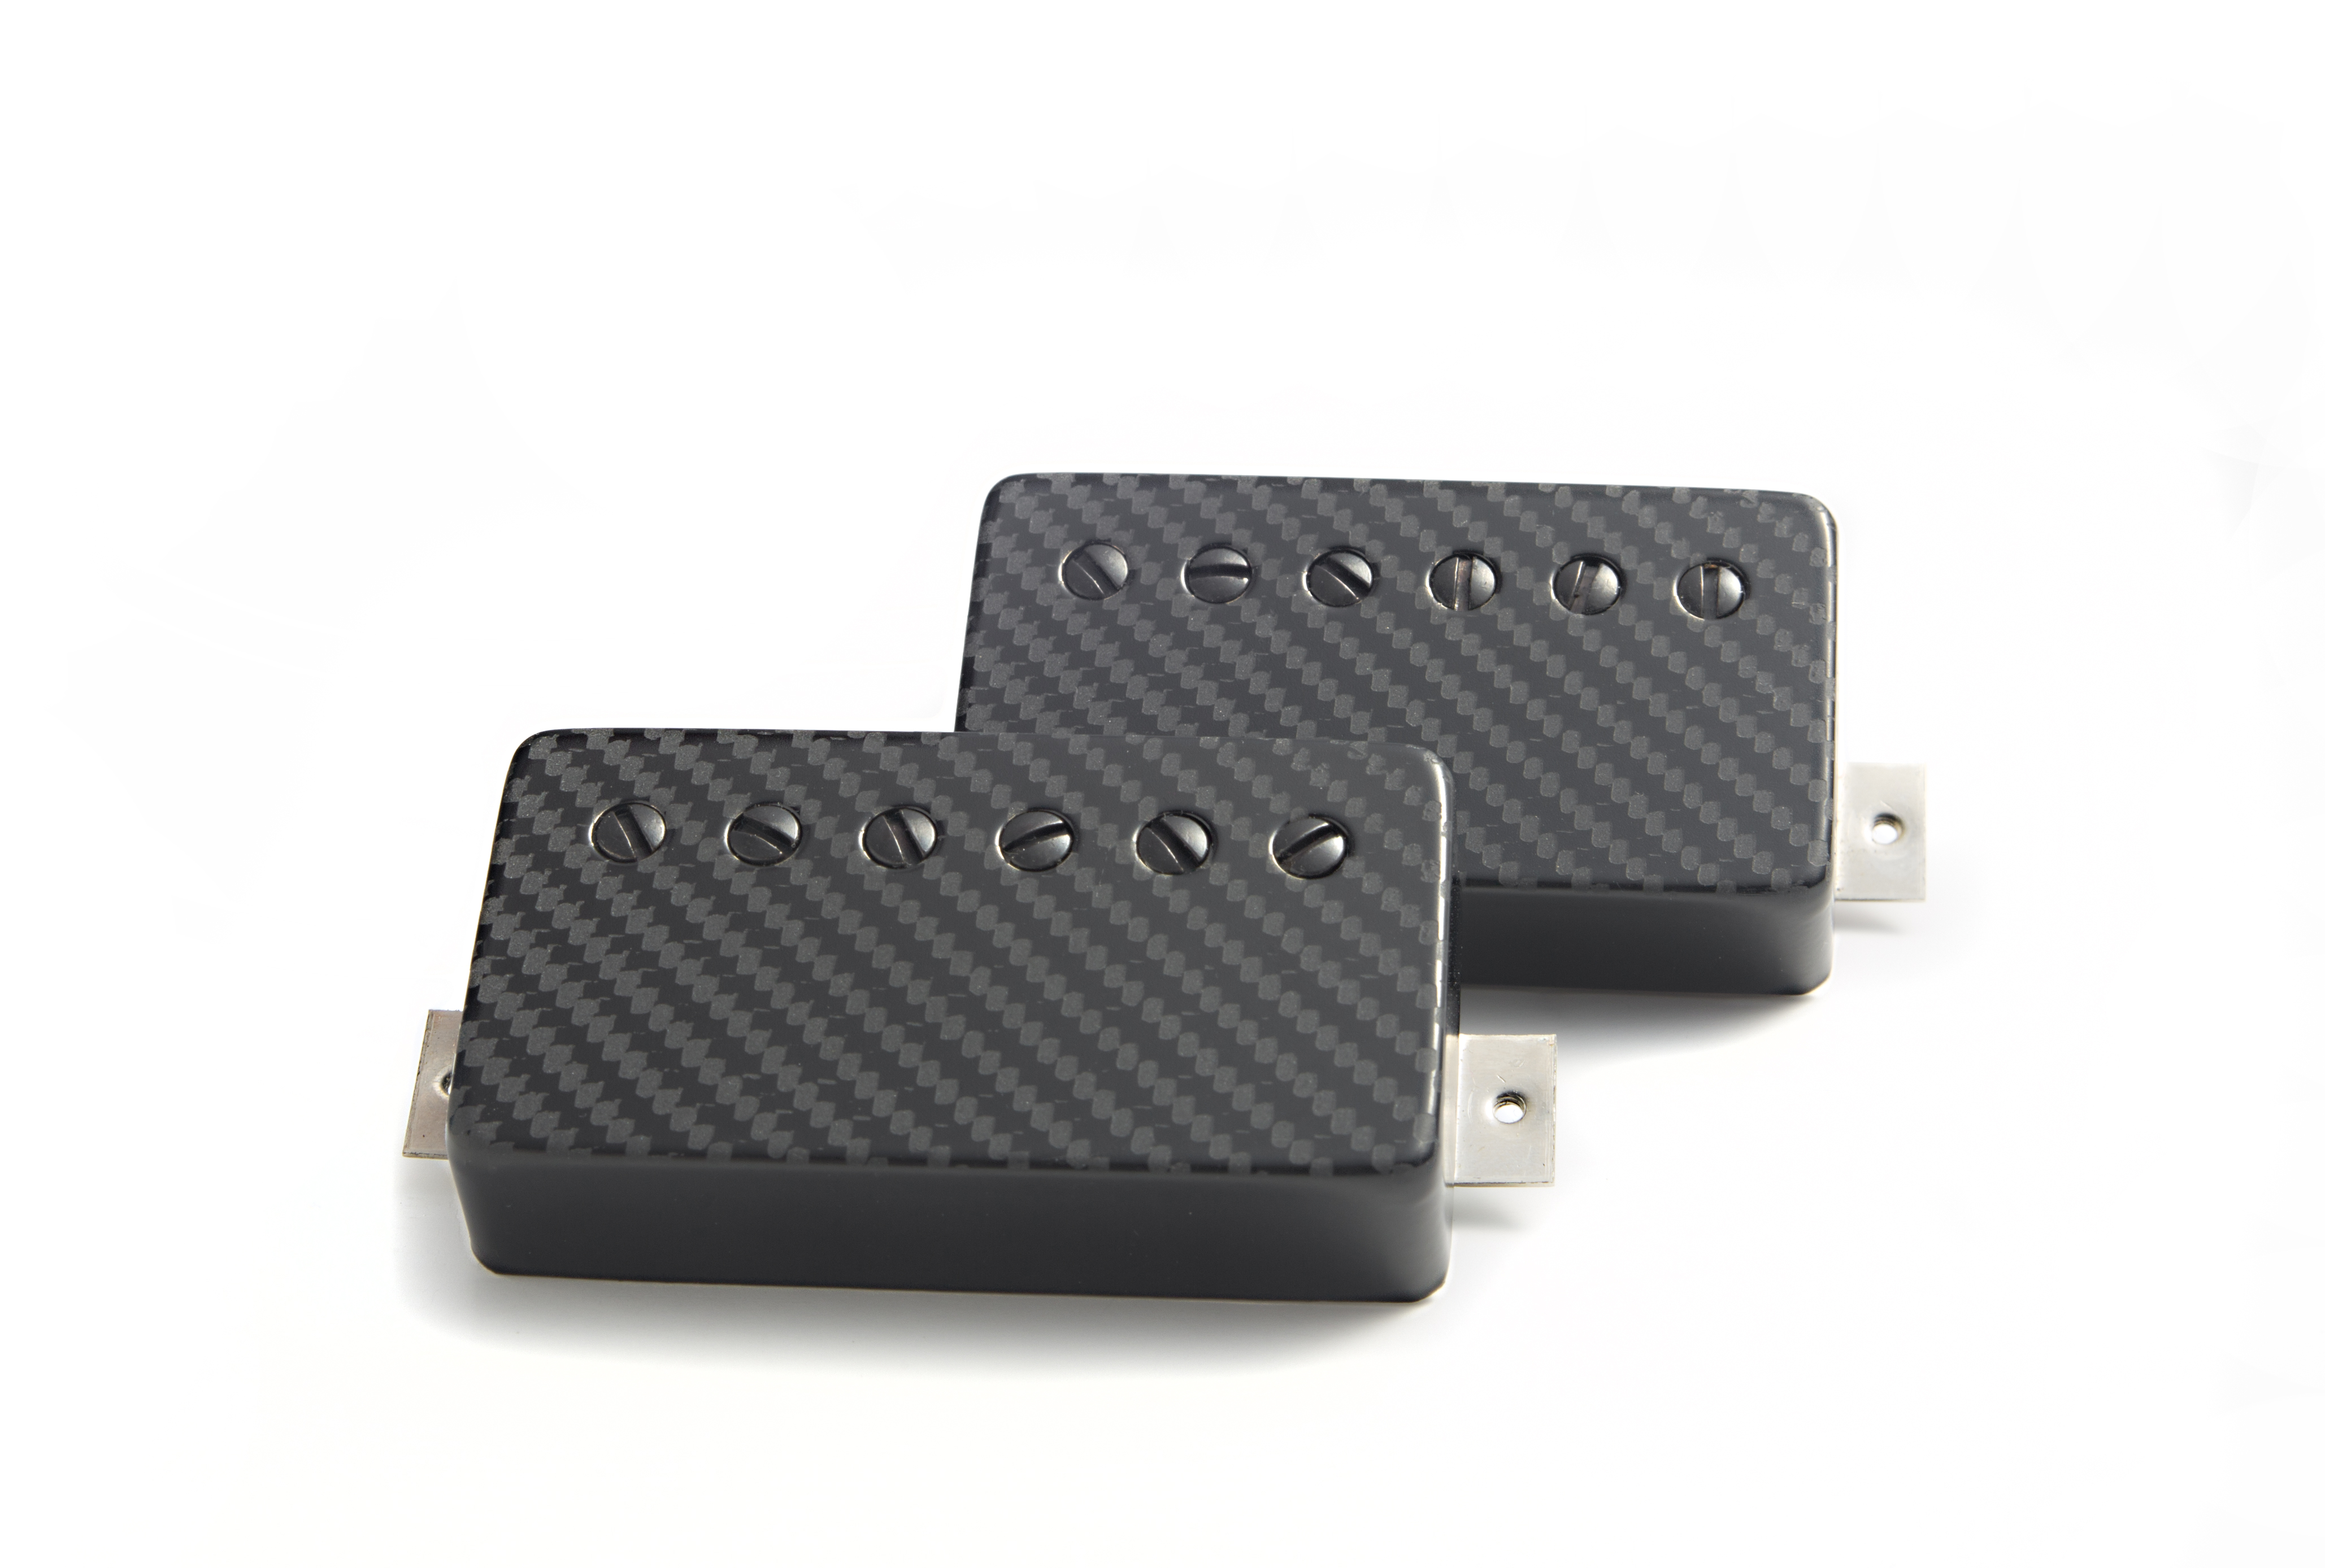 Ragnarok Humbucker Bare Knuckle Pickups Options For Wiring Humbuckers Boxofknobs